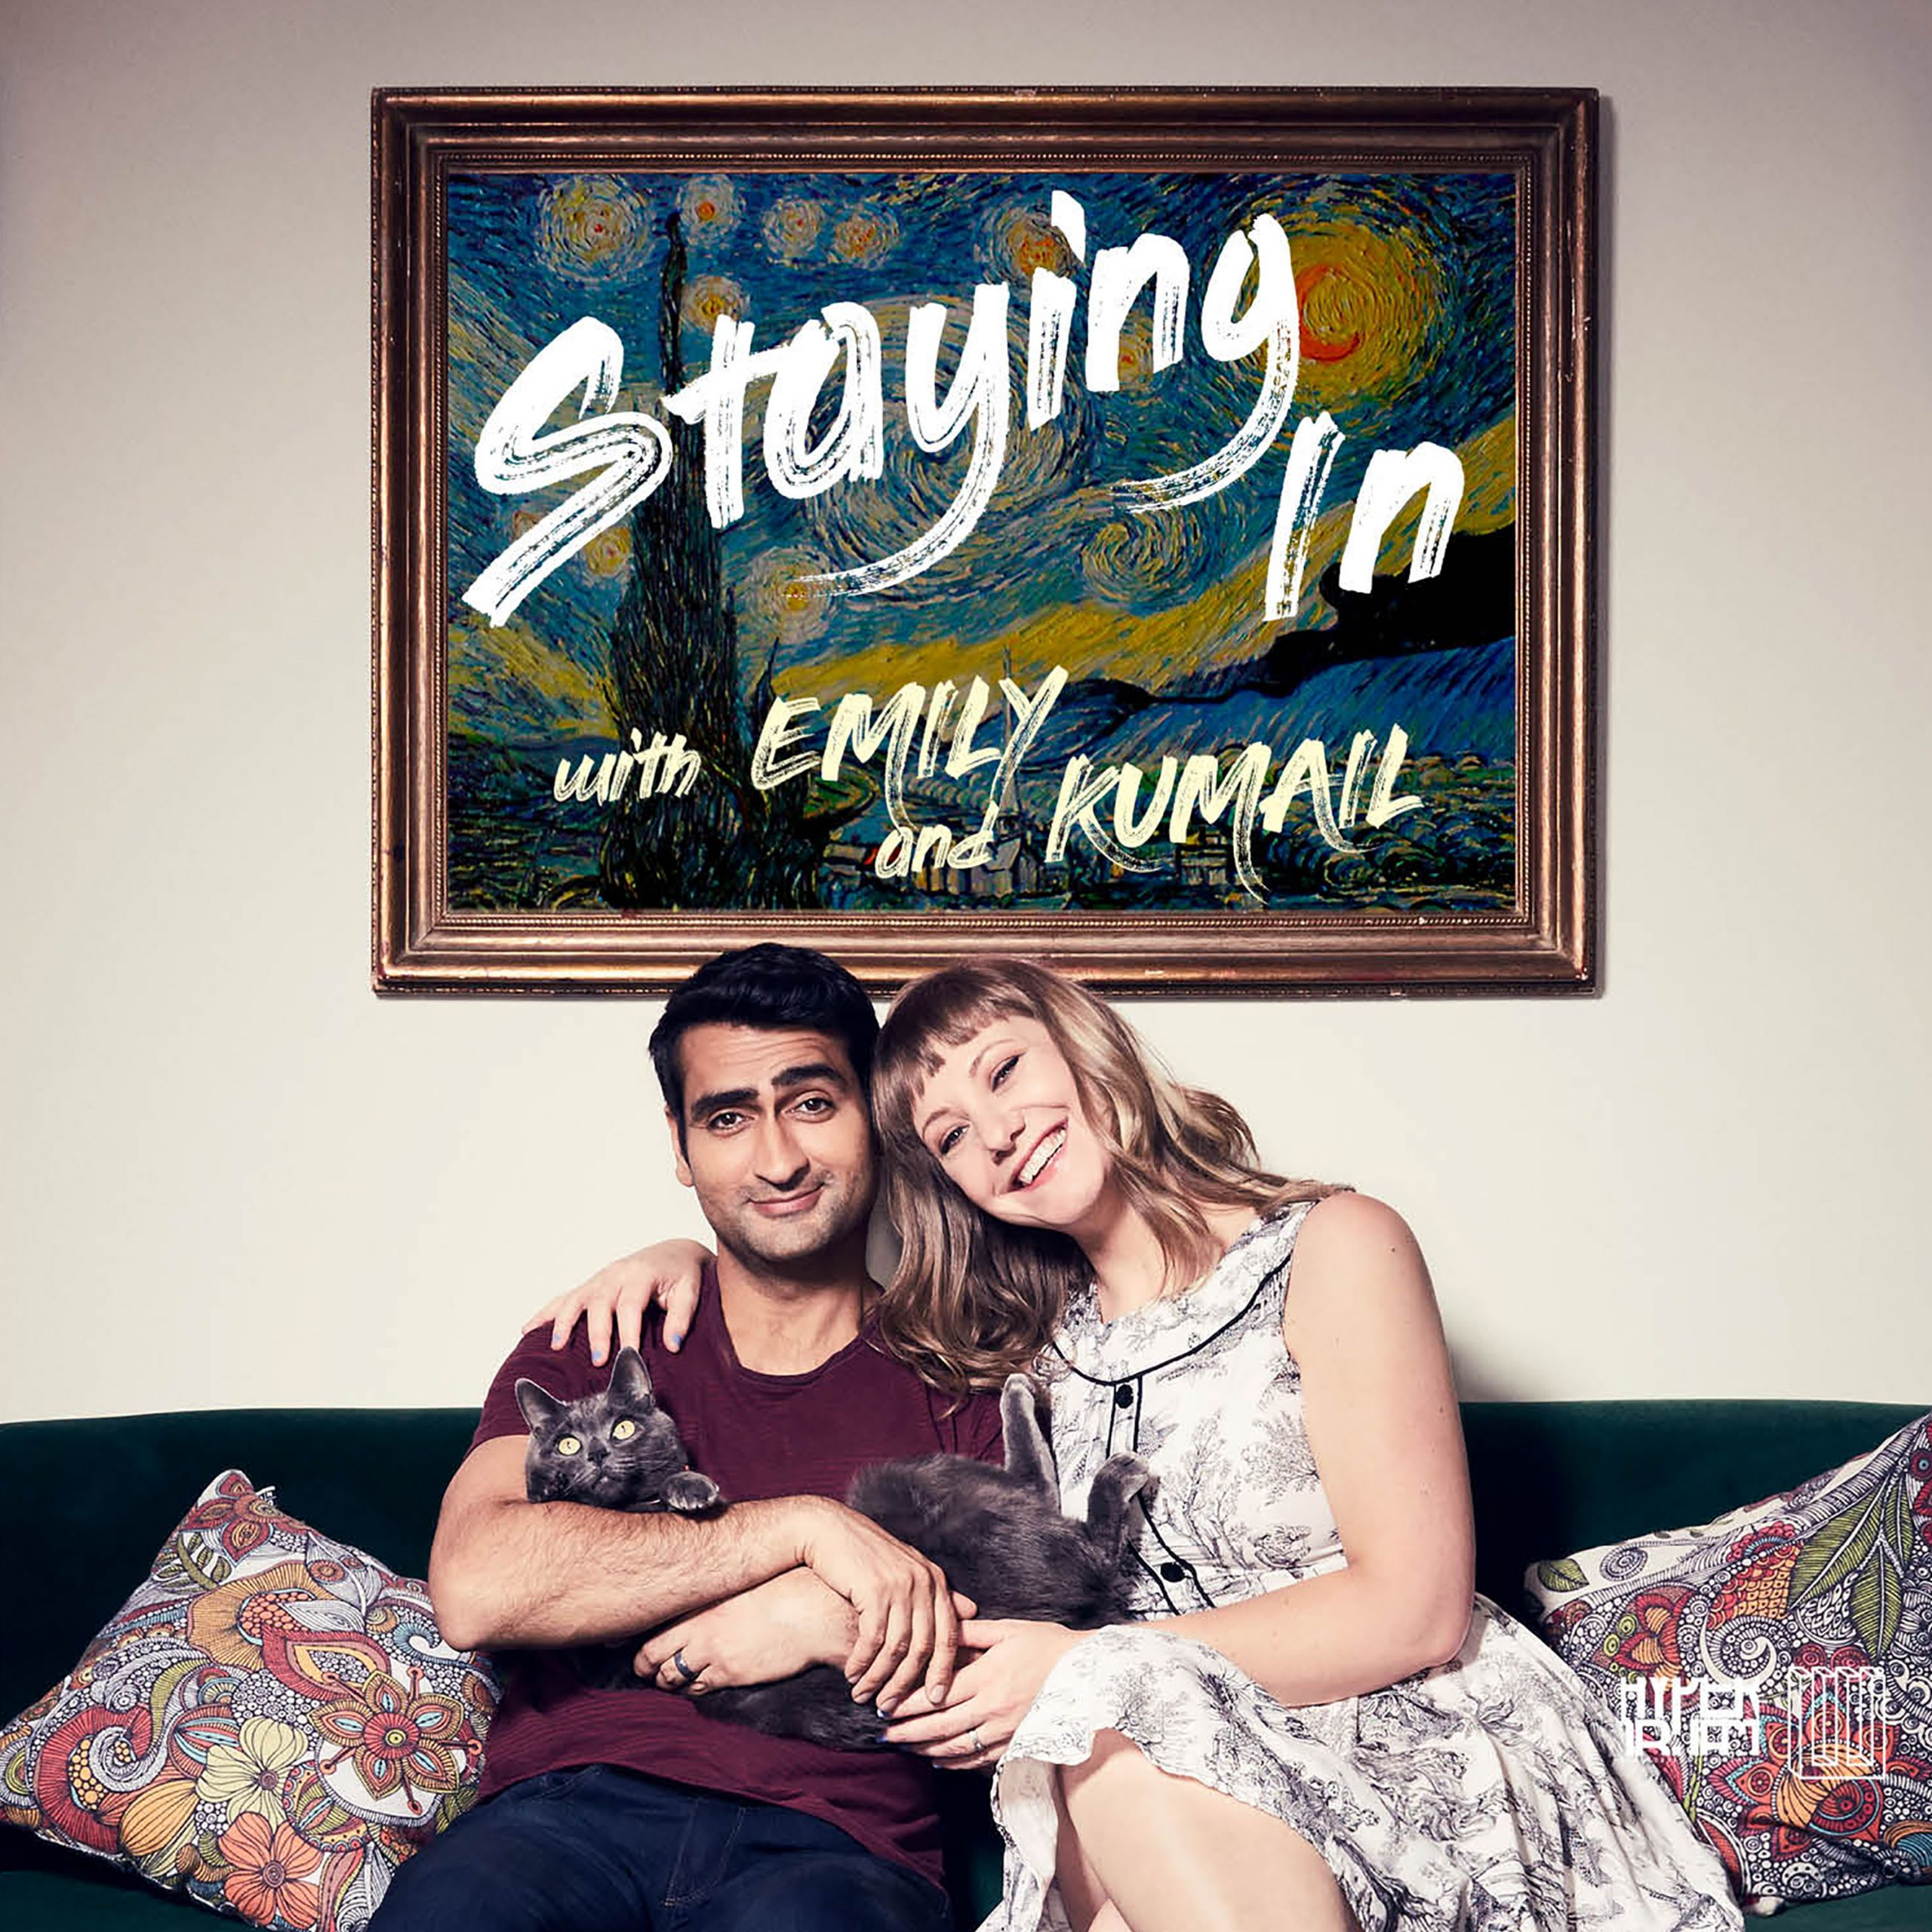 The Indoor Kids Podcast  Staying in with Emily and Kumail The indoor kids podcast